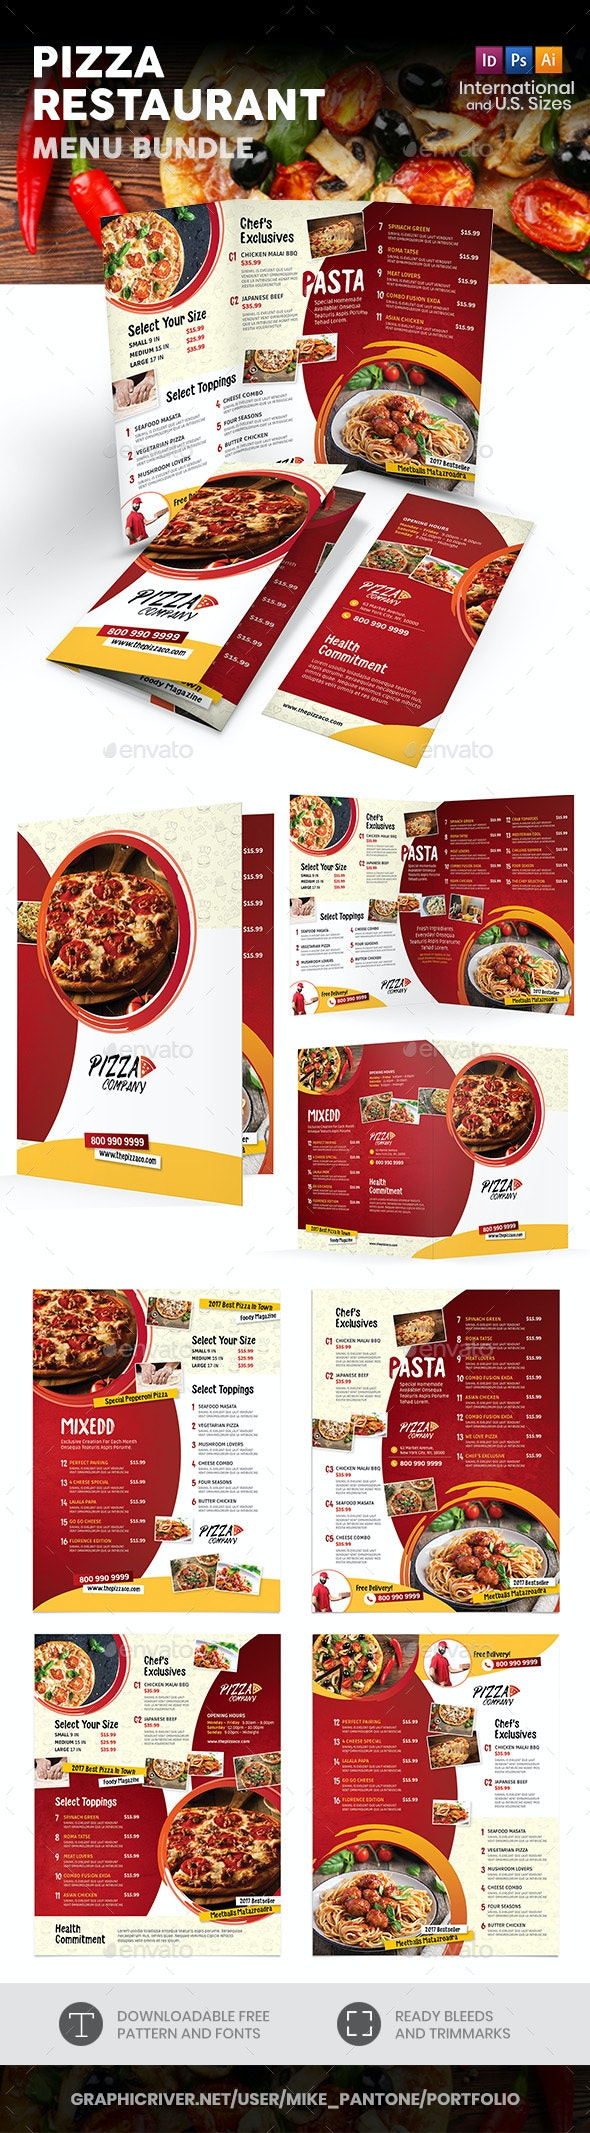 Pizza Restaurant Print Bundle 2 - Food Menus Print Templates